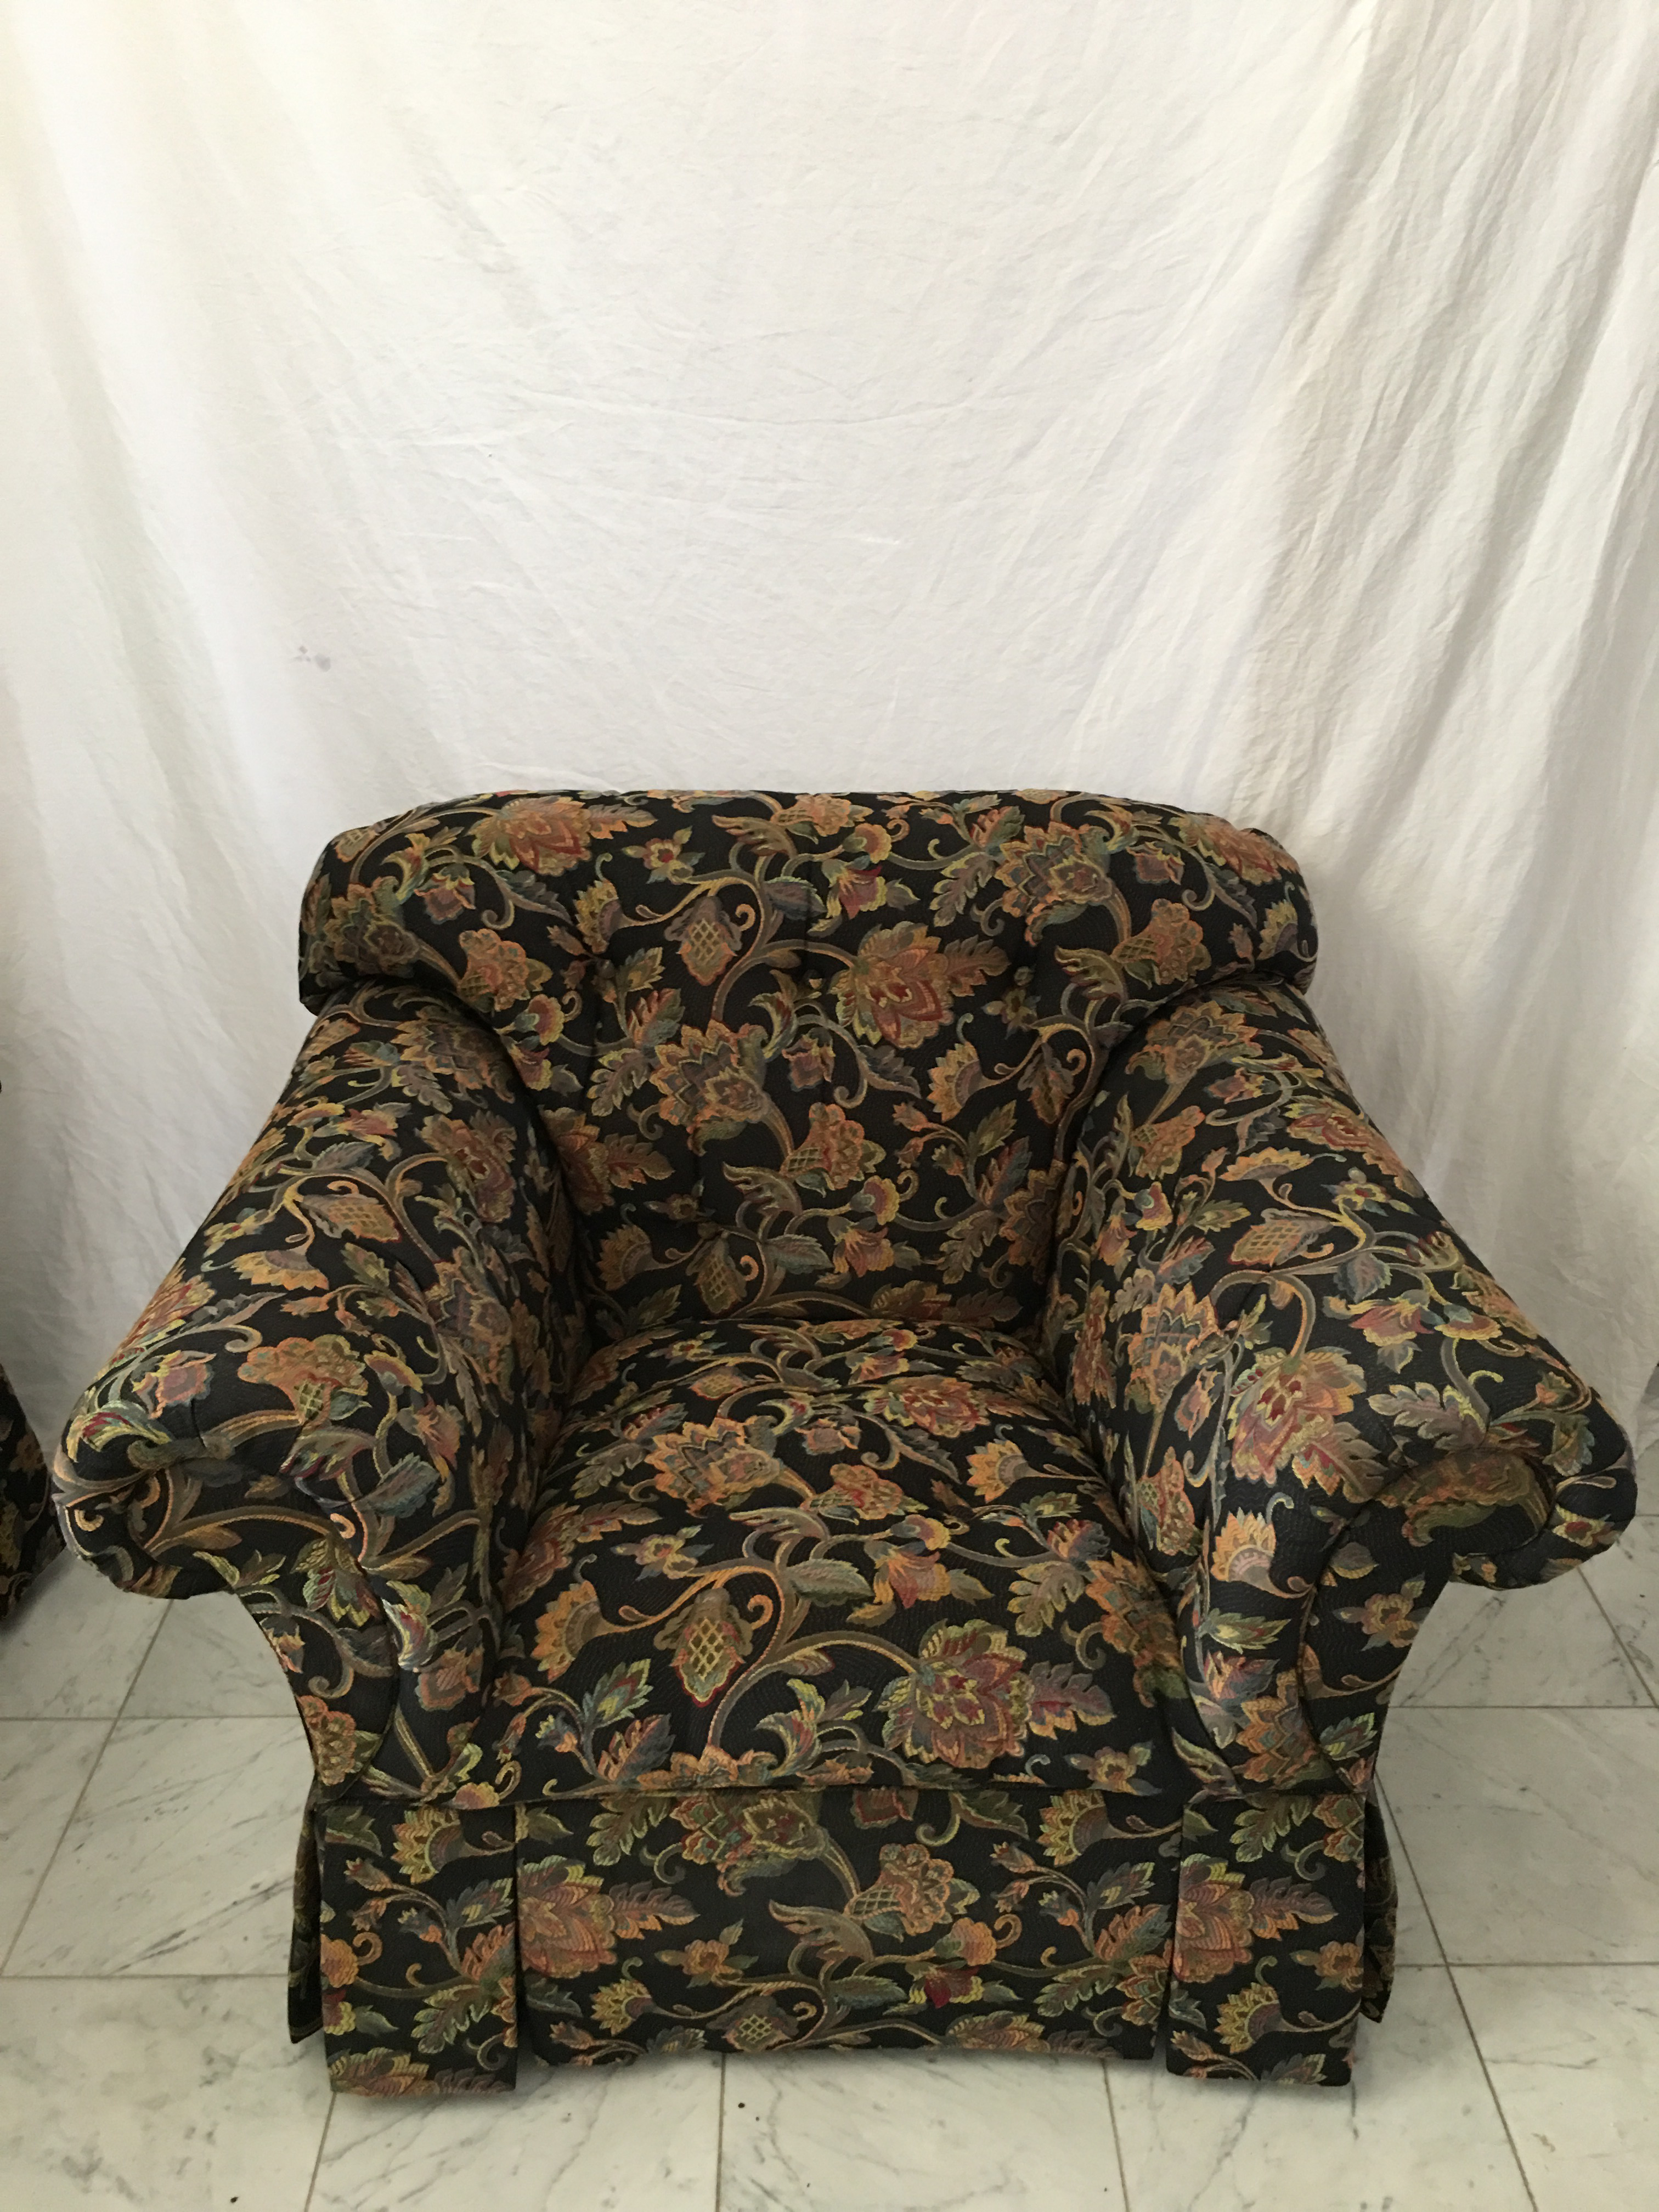 Merveilleux Drexel Heritage Drexel Heritage Oversized Tufted Chairs U0026 Ottoman For Sale    Image 4 Of 11